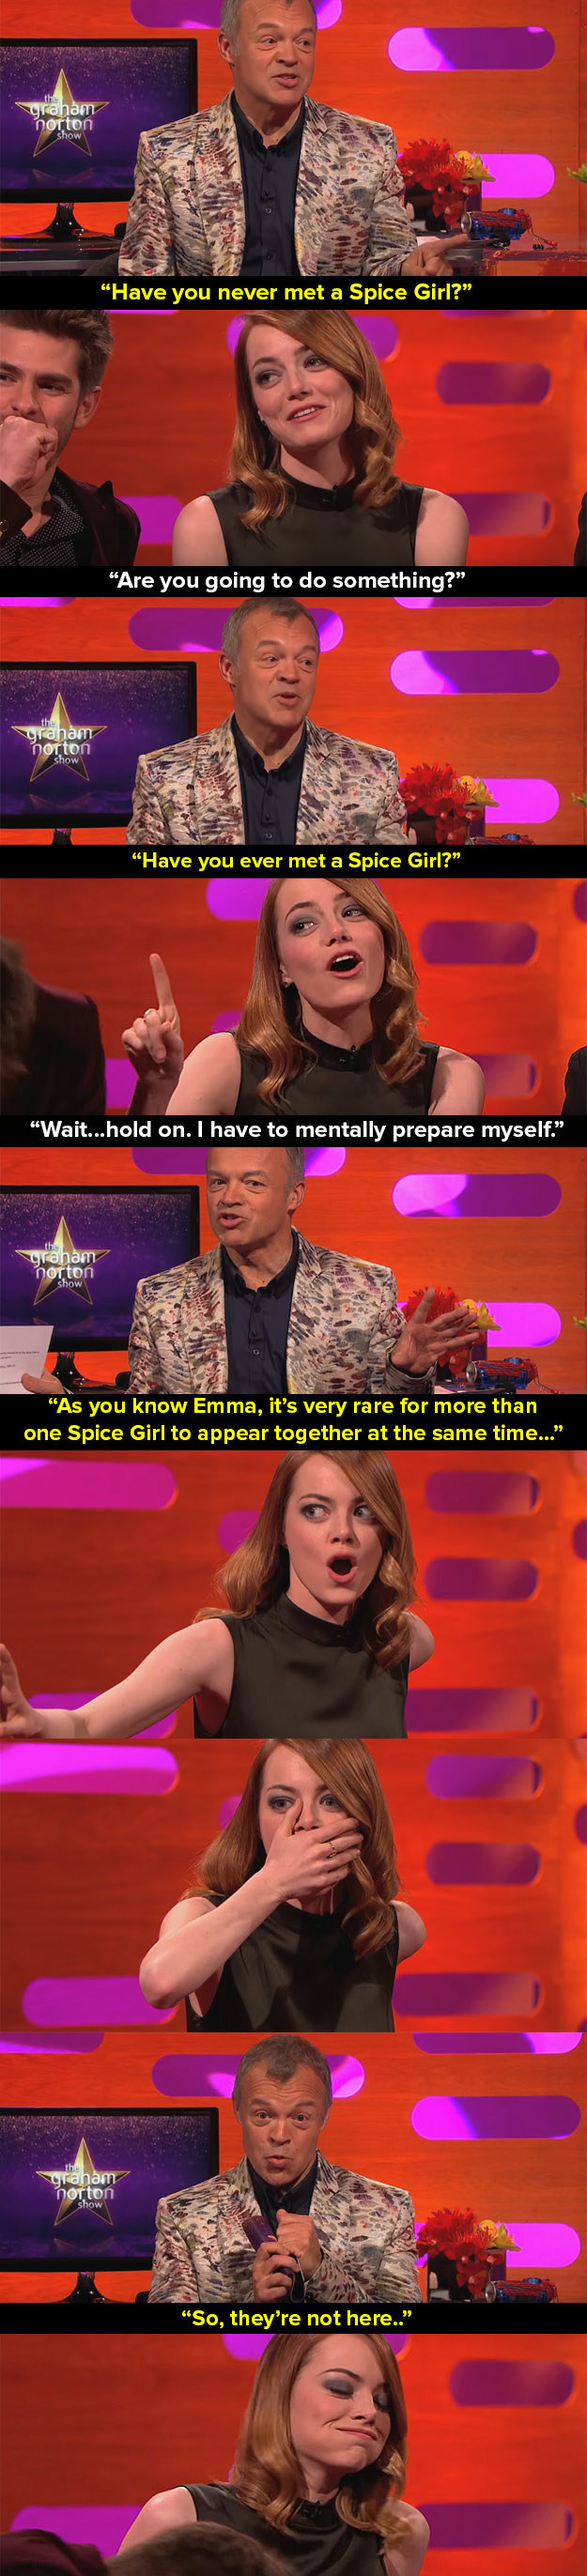 When Graham Norton convinced Emma Stone that she was about to meet the Spice Girls.